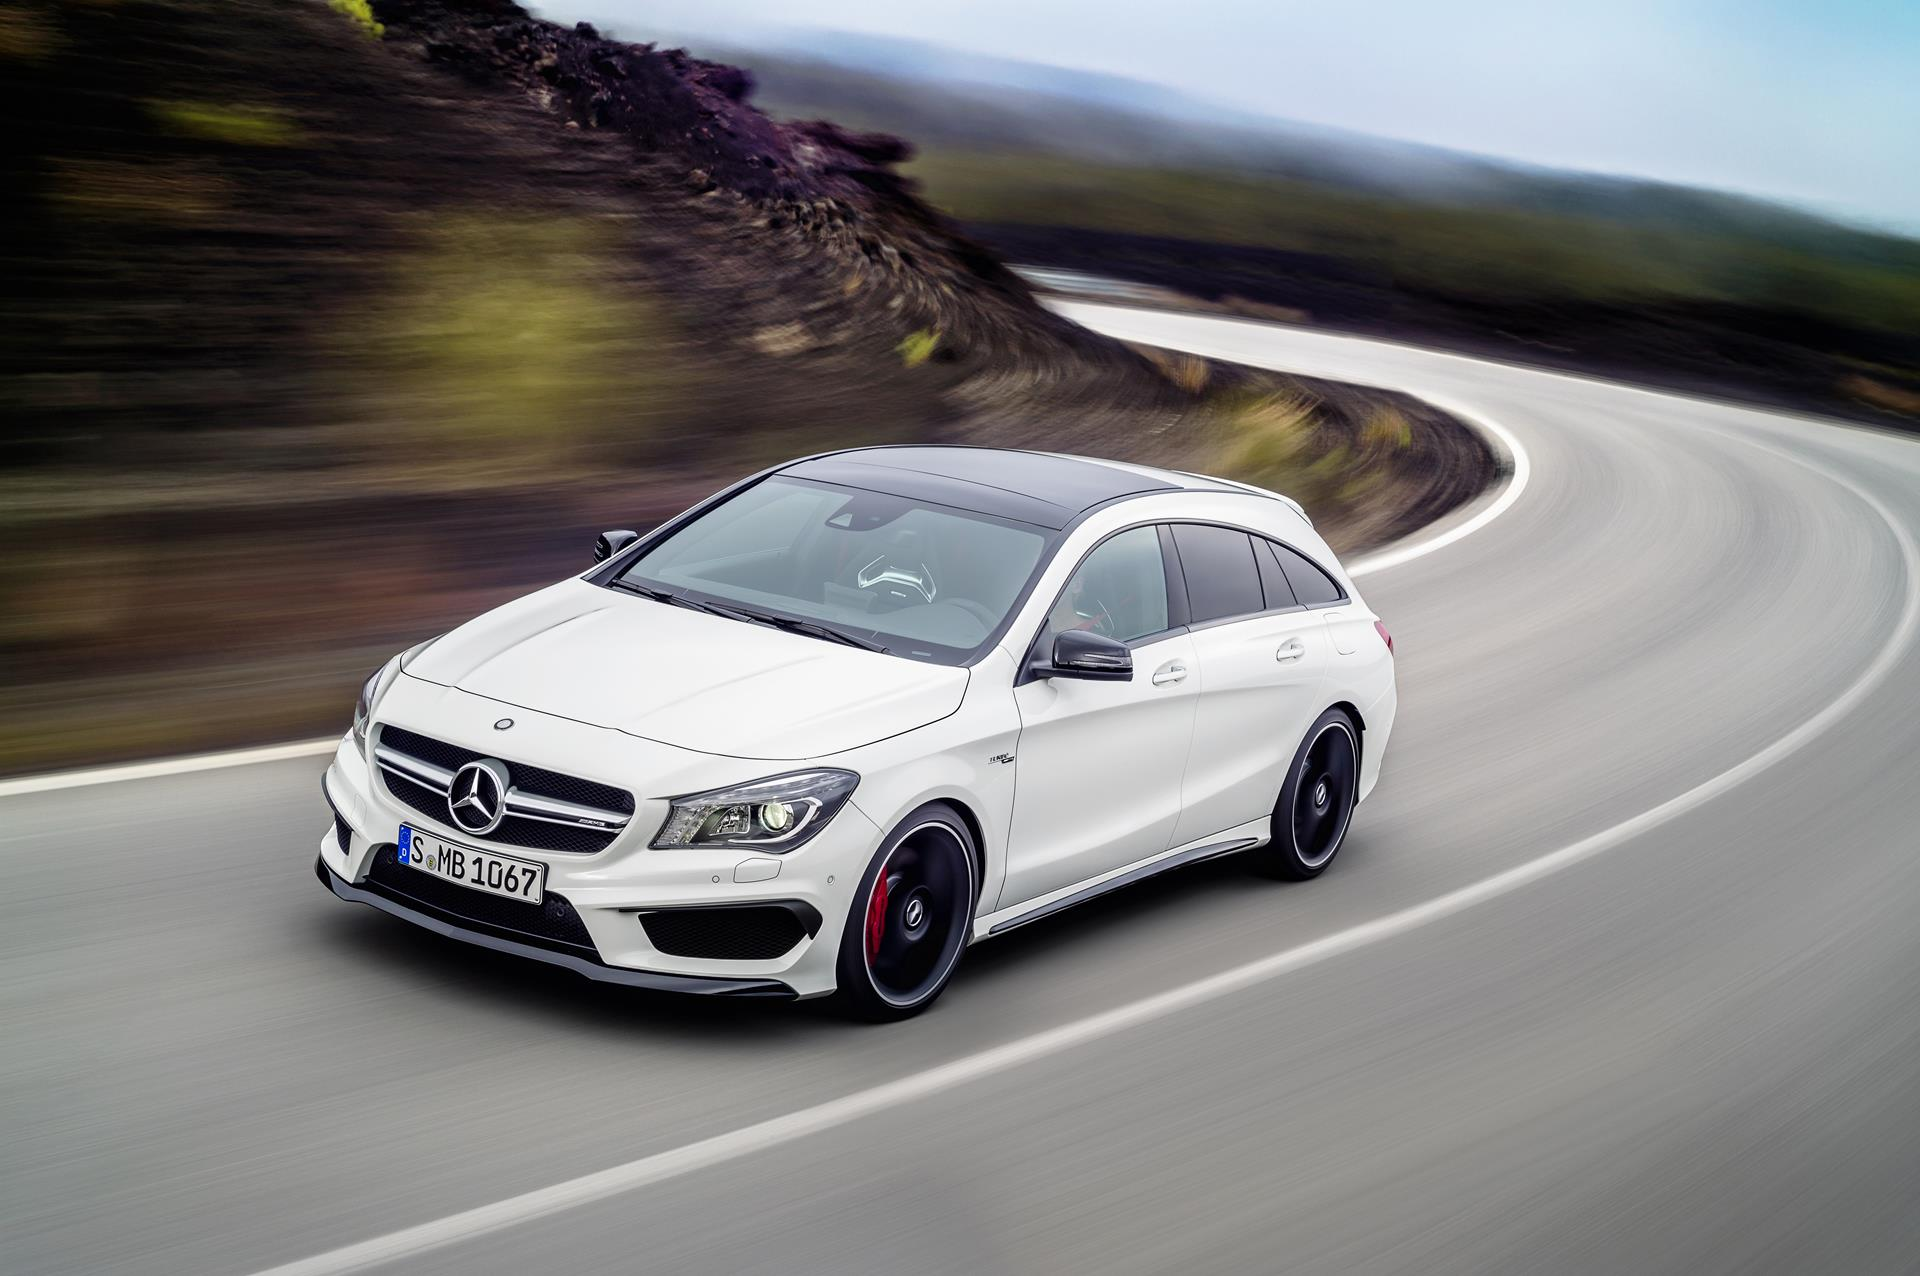 2015 mercedes benz cla 45 amg shooting brake wallpaper. Black Bedroom Furniture Sets. Home Design Ideas